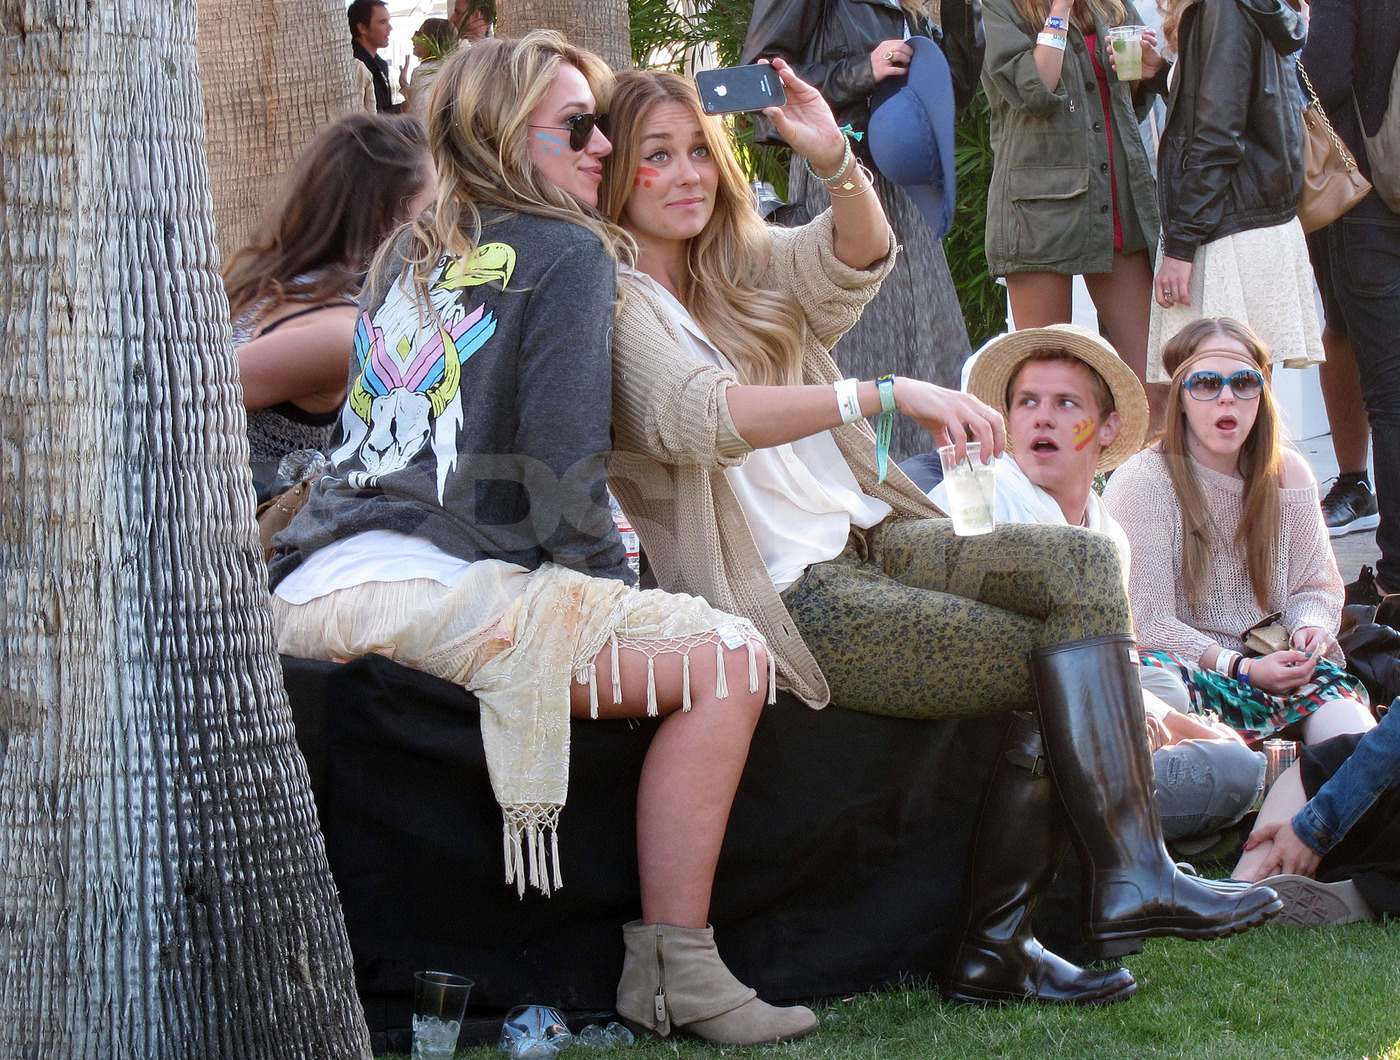 Lauren Conrad and Haylie Duff snapped a picture at the festival on Saturday after Lauren lounged poolside at Lacoste's bash.